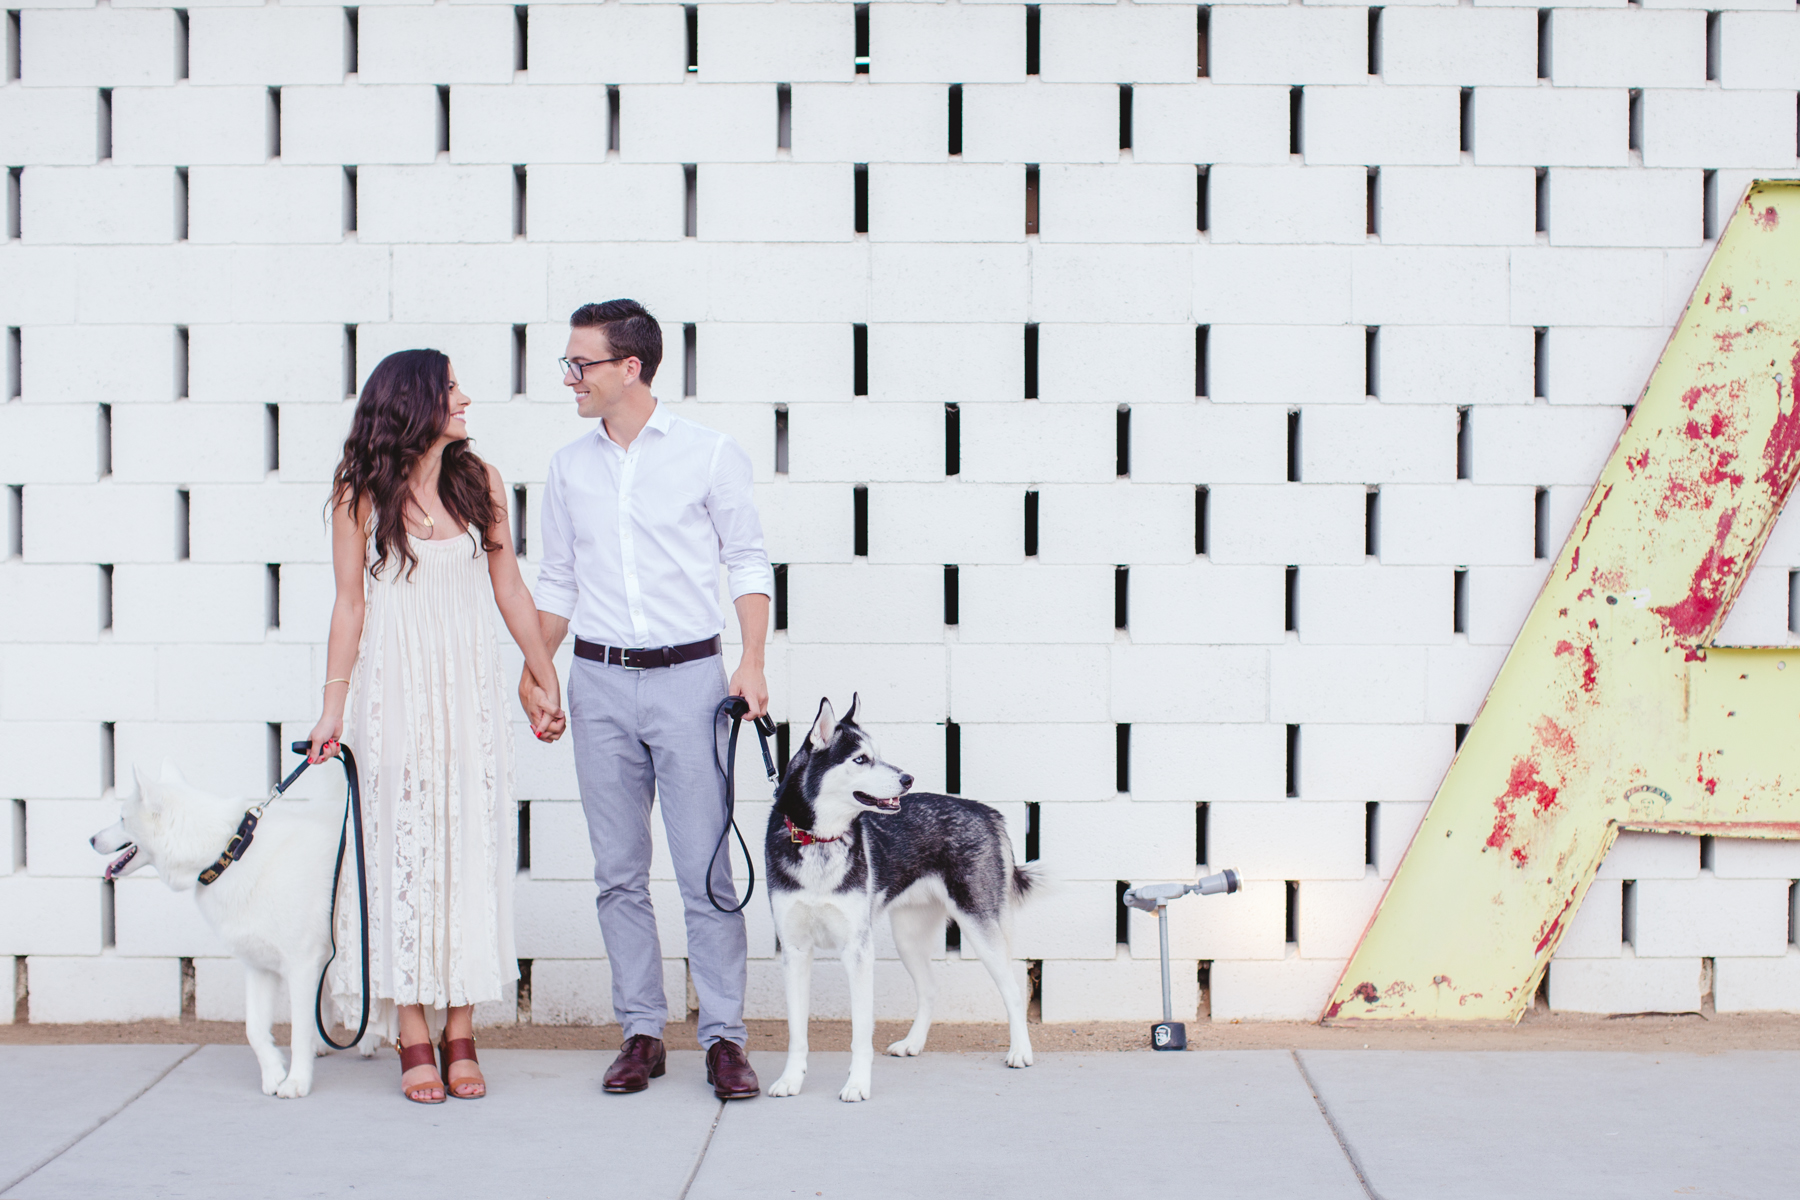 All_Days_Wonder_Palm_Springs_Engagement-17.jpg